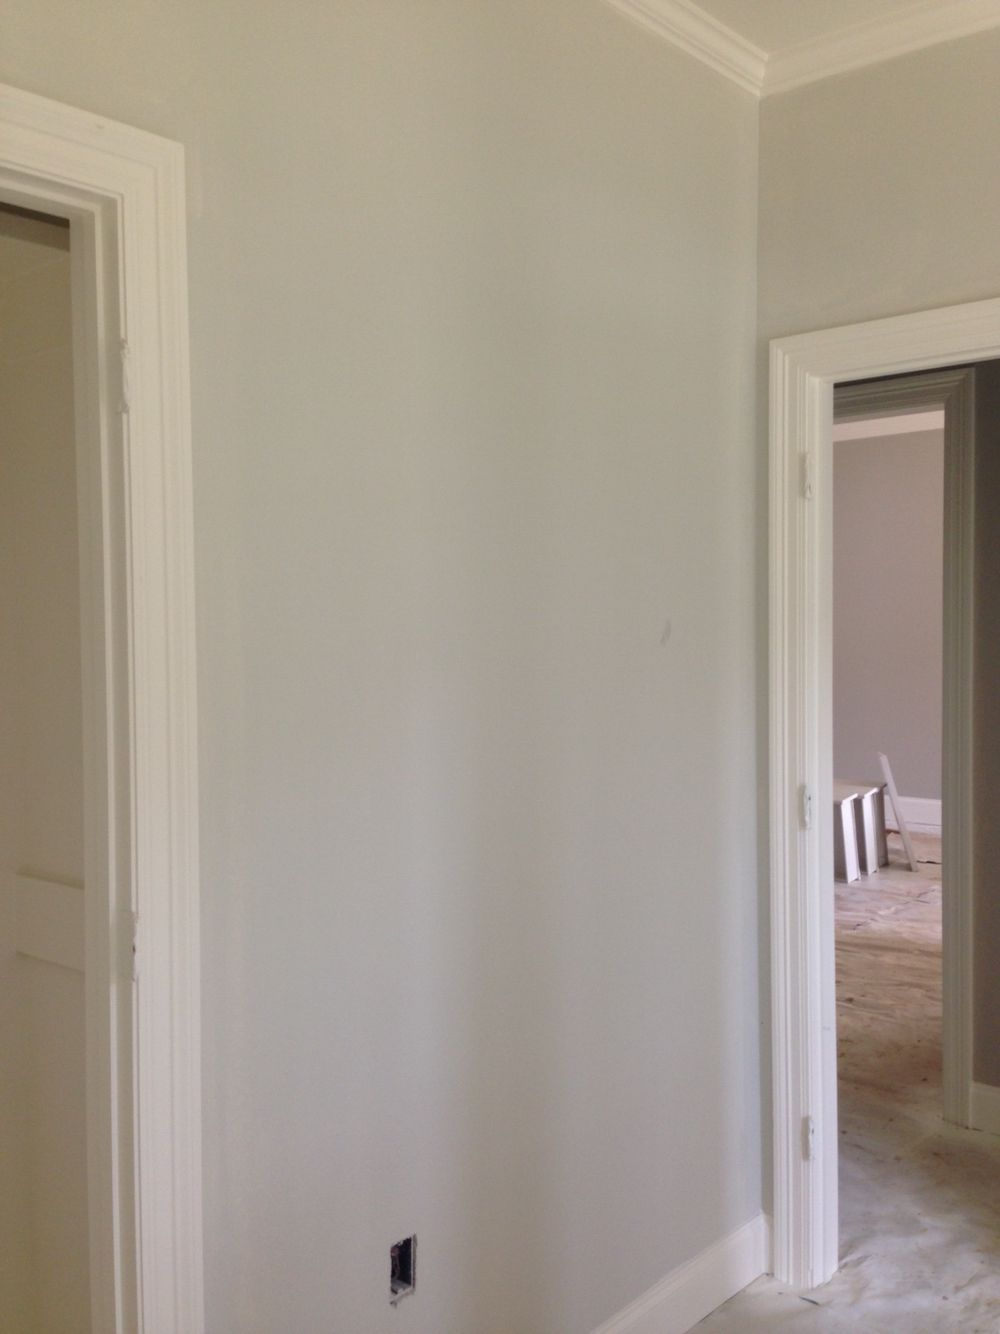 Best Walls Are Benjamin Moore Classic Gray Trim Is Bm White 400 x 300